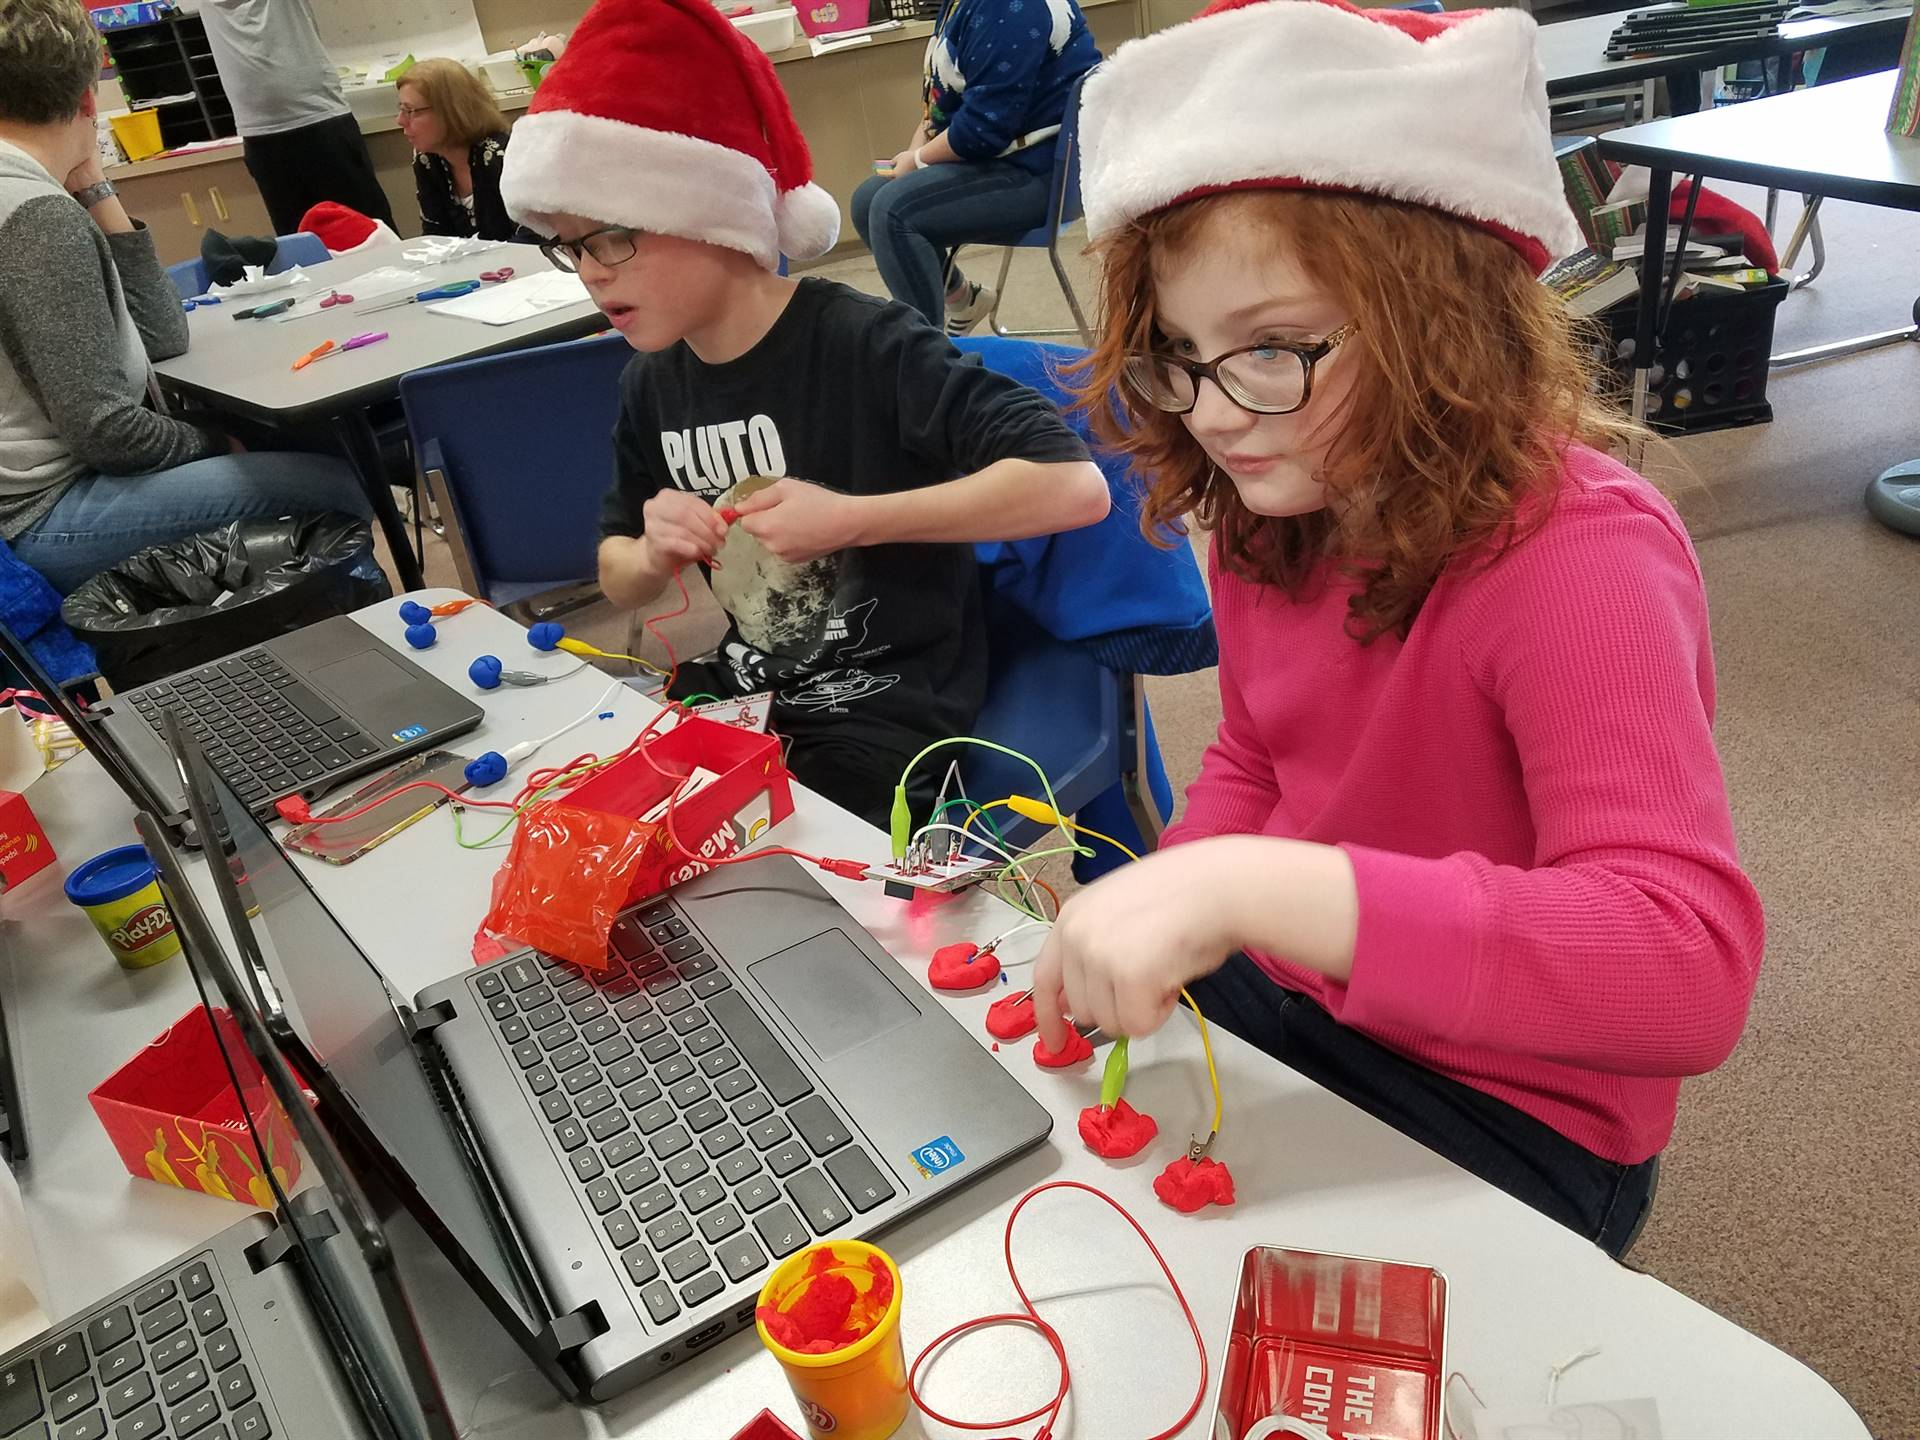 Two students working with Makeys